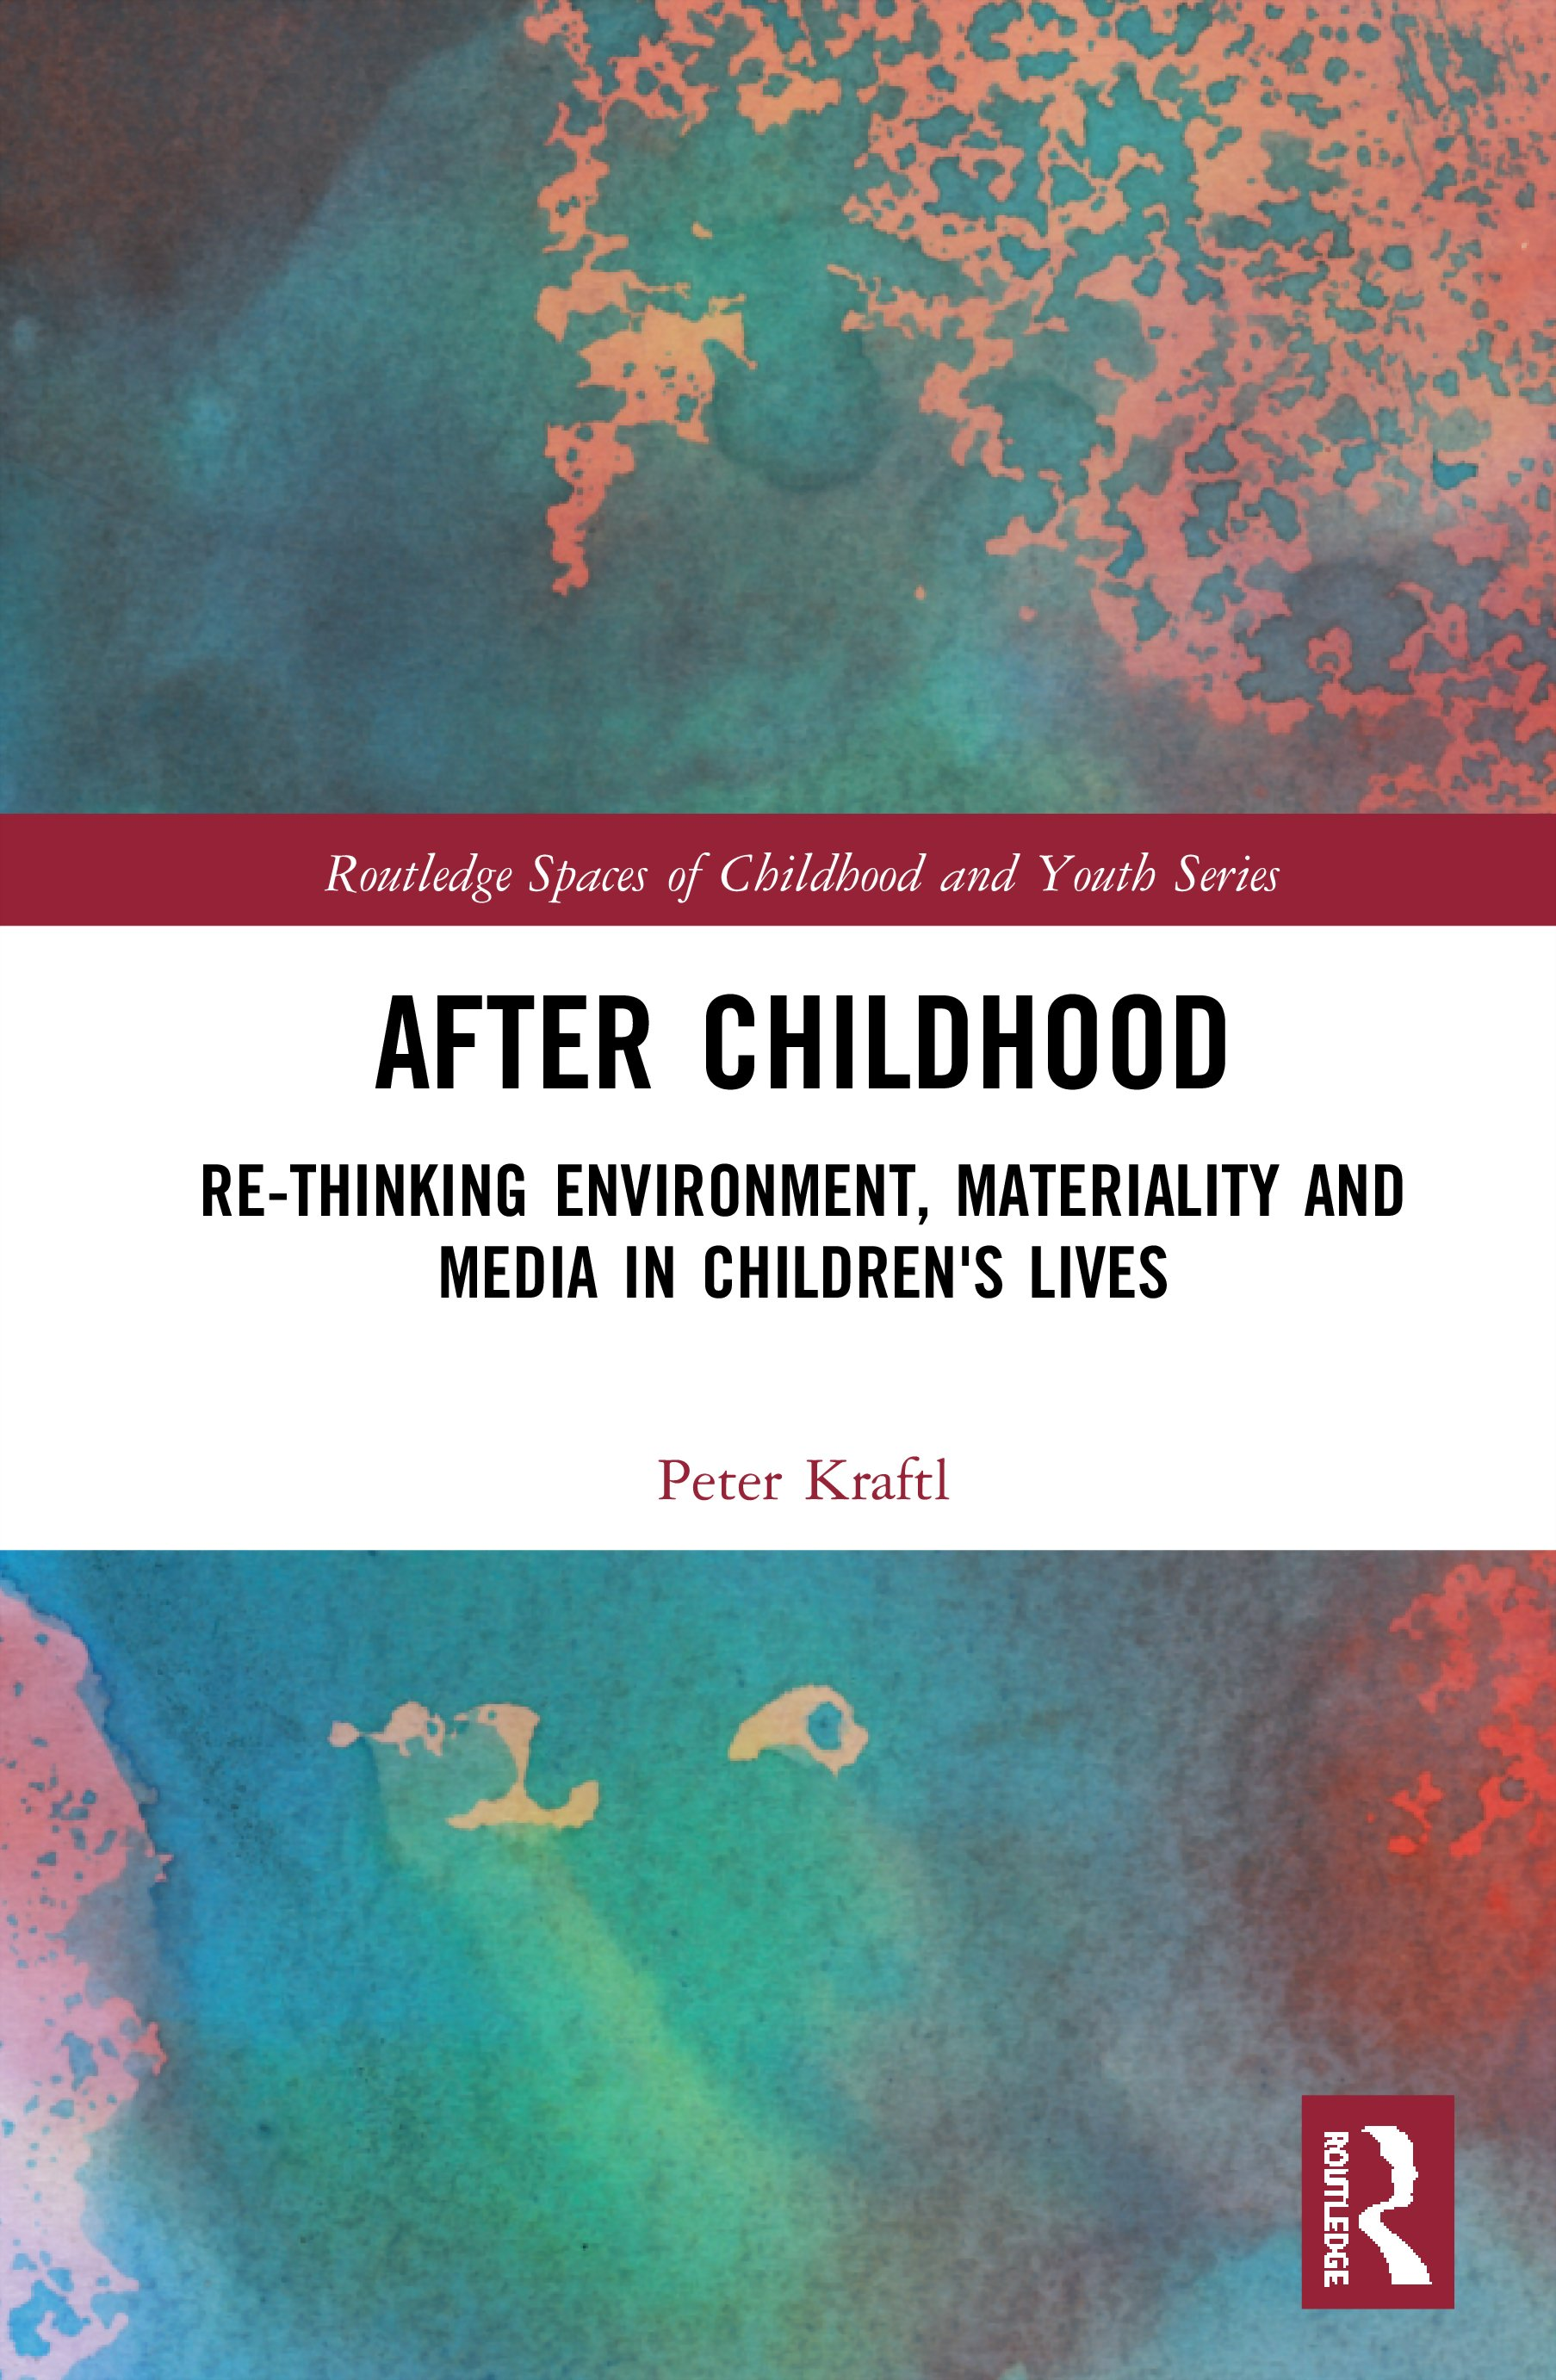 After Childhood: Re-thinking Environment, Materiality and Media in Children's Lives book cover